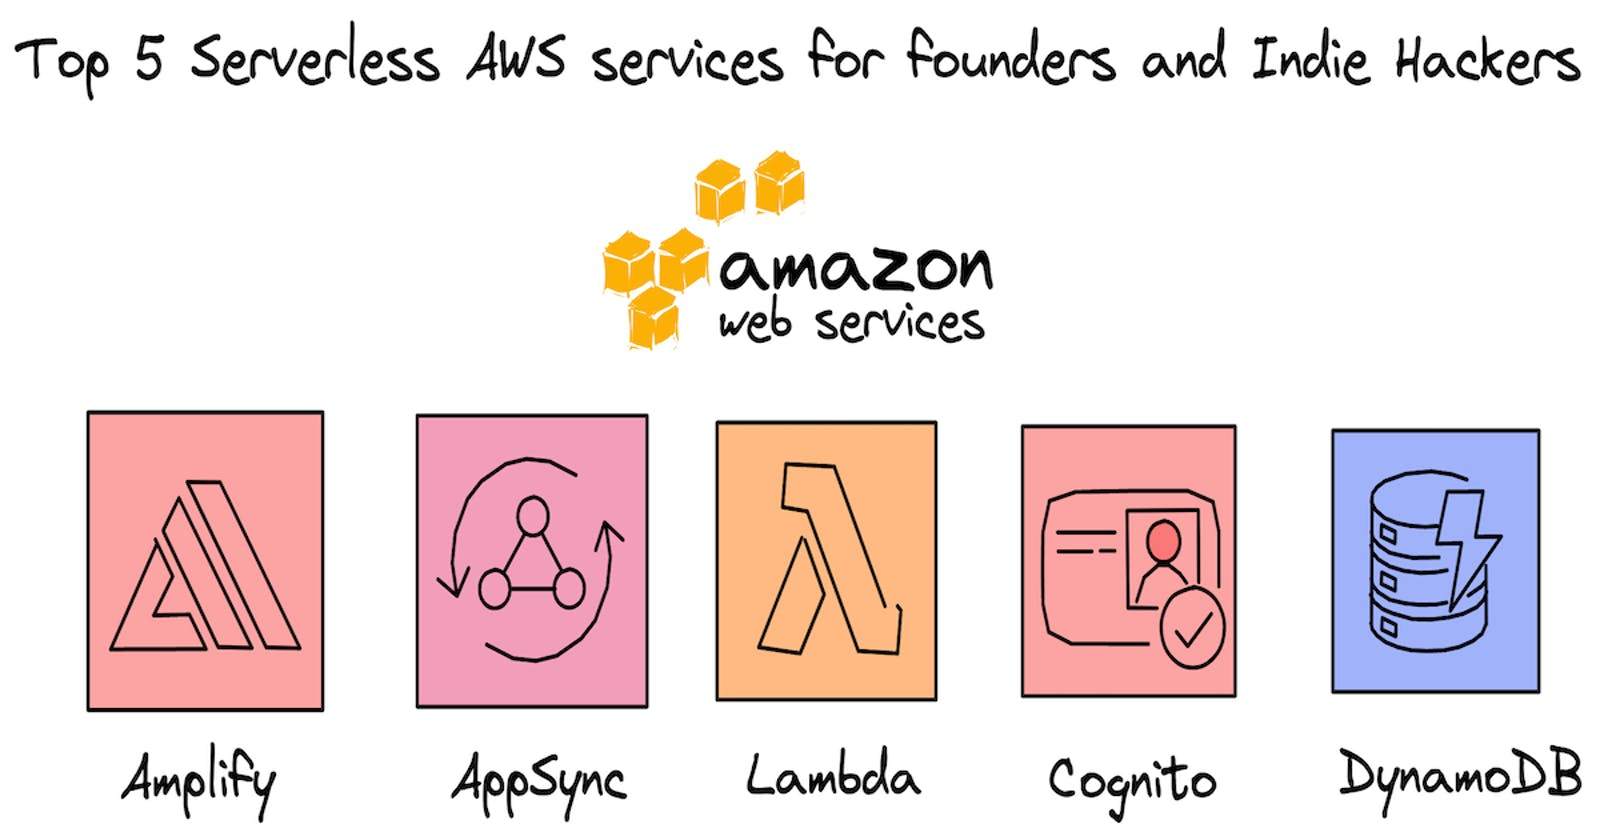 Top 5 Serverless AWS Services founders & Indie Hackers should know